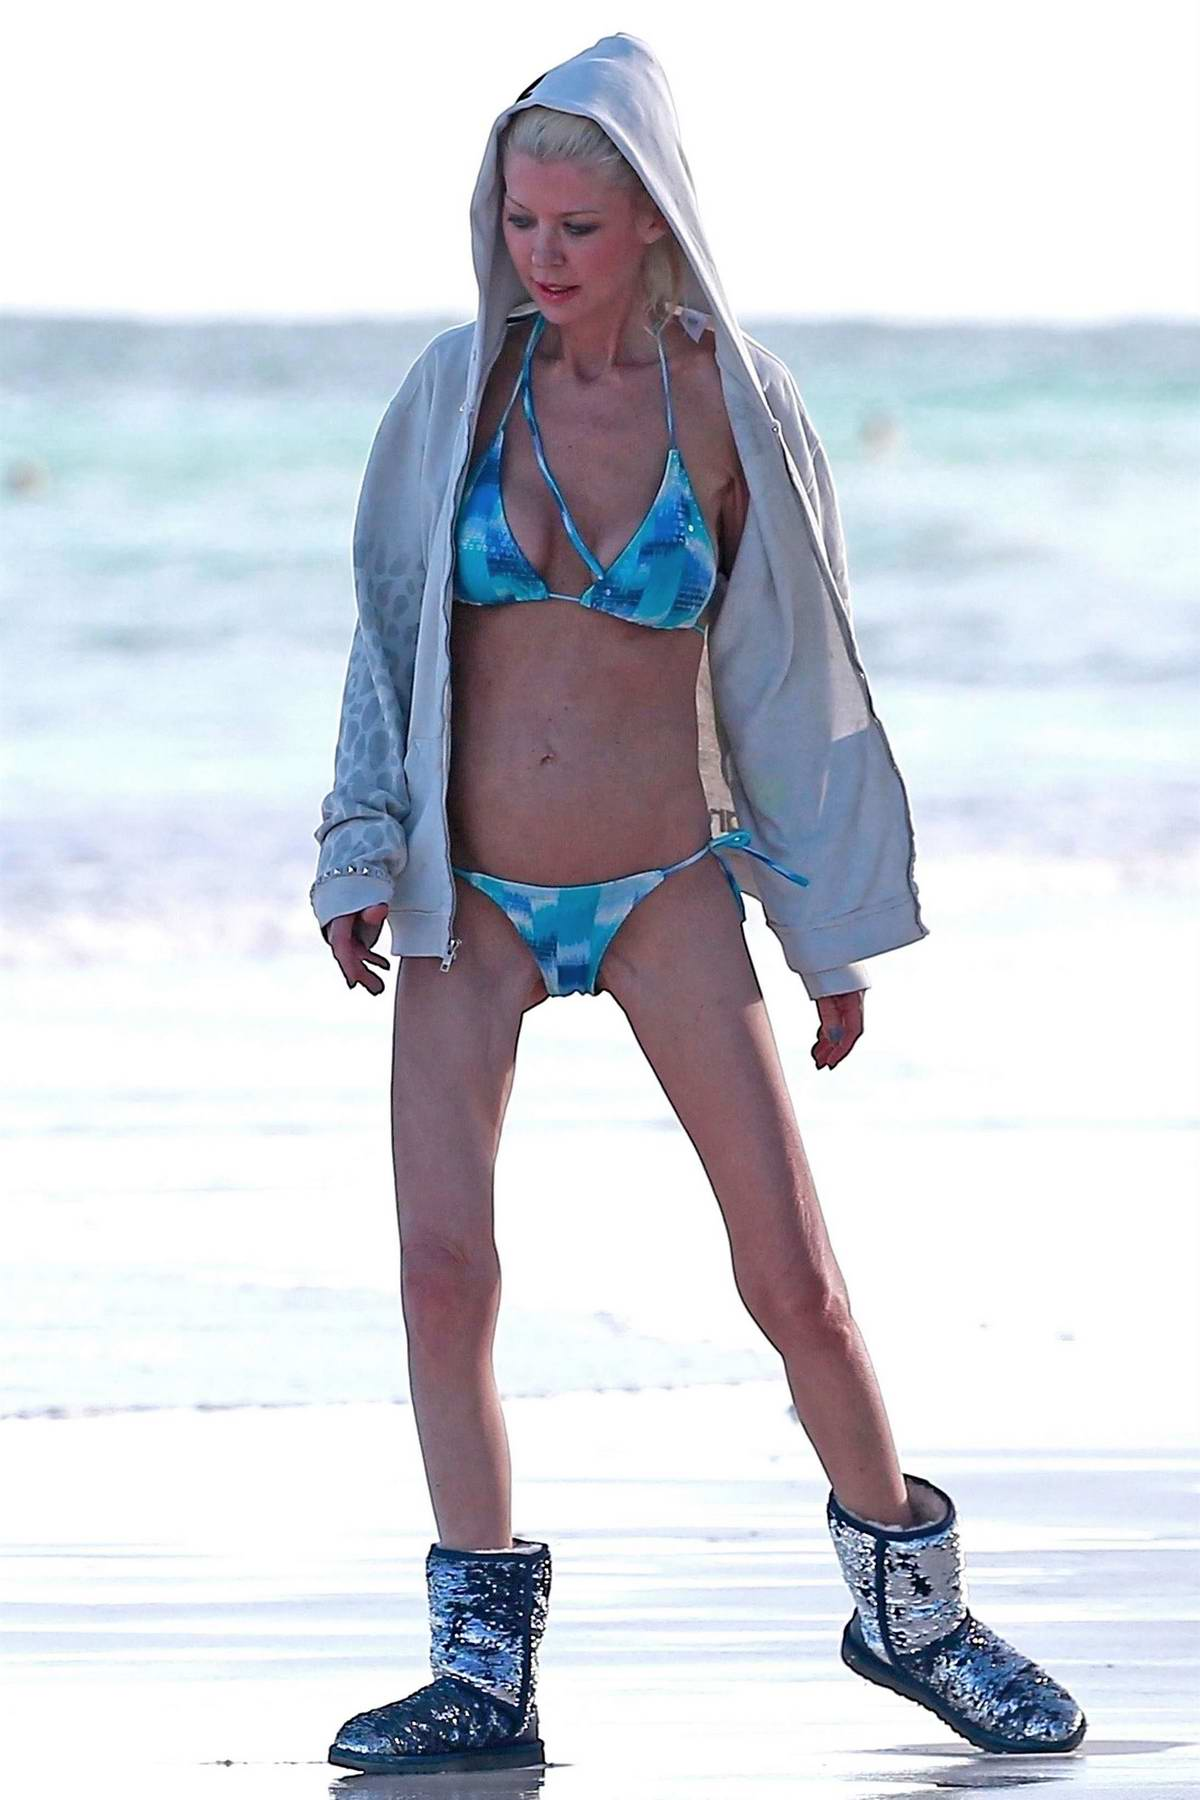 Tara Reid was spotted enjoying a solo trip to the beach in Tulum, Mexico